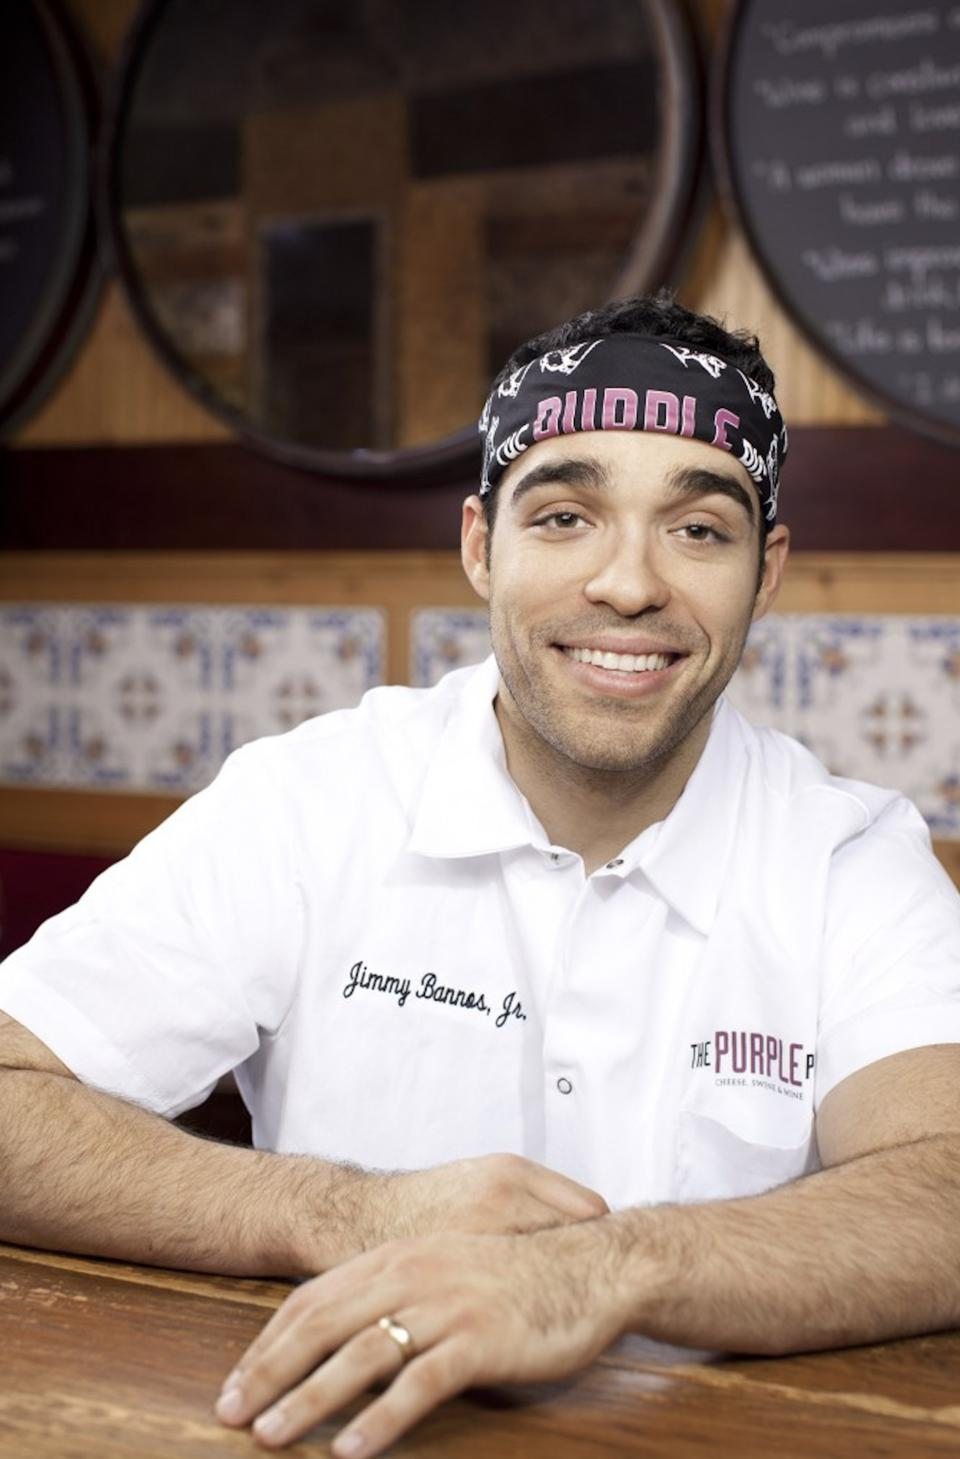 Jimmy Bannos, Jr. is the owner and chef of The Purple Pig in Chicago.